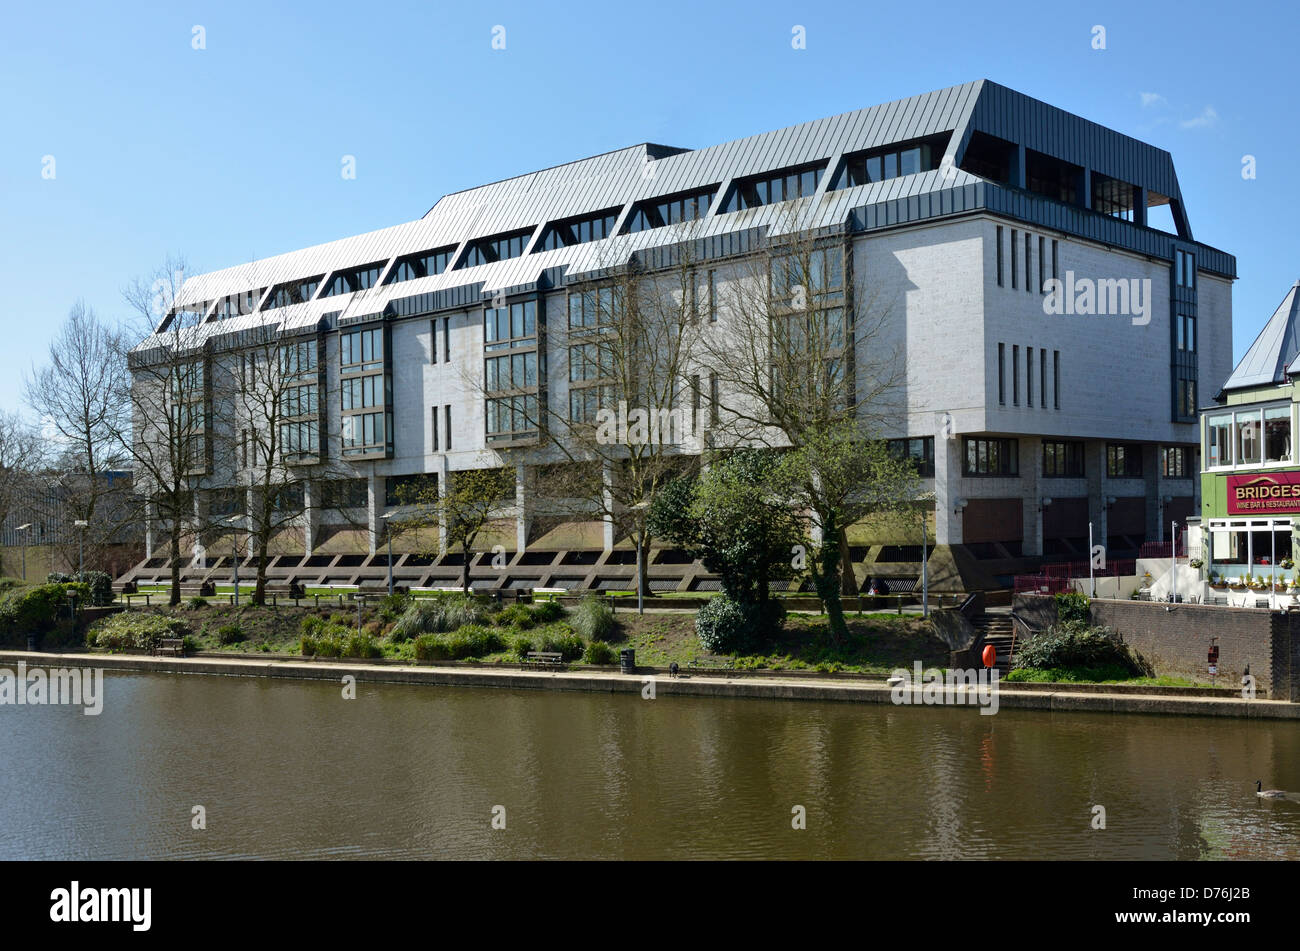 Maidstone, Kent, England, UK. The Law Courts; Crown Court / County Court, by the river Medway. - Stock Image